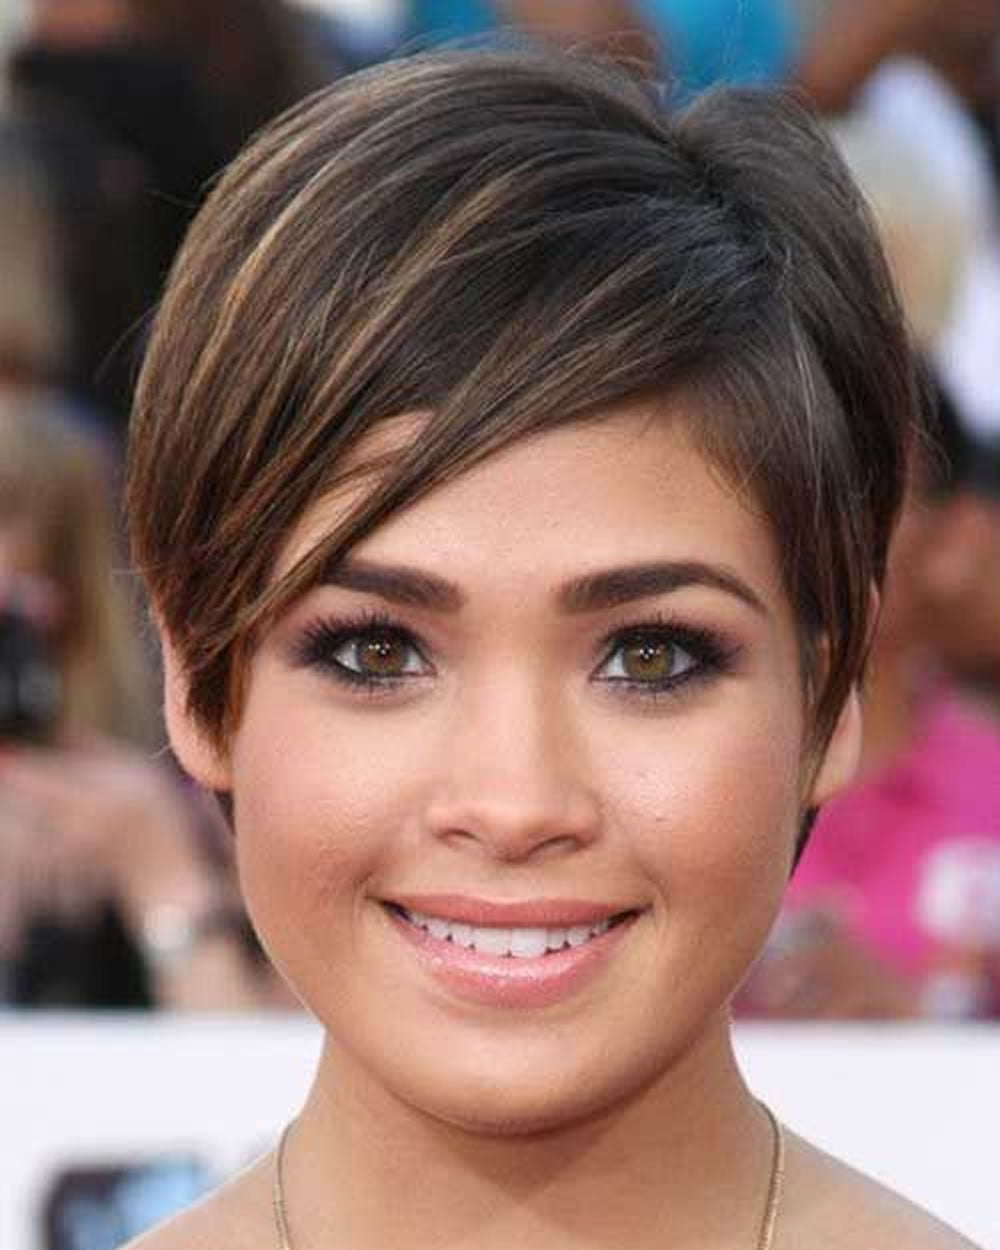 Hairstyles For Round Faces: Pixie Hairstyles Fine Hair For Round Face 2018-2019